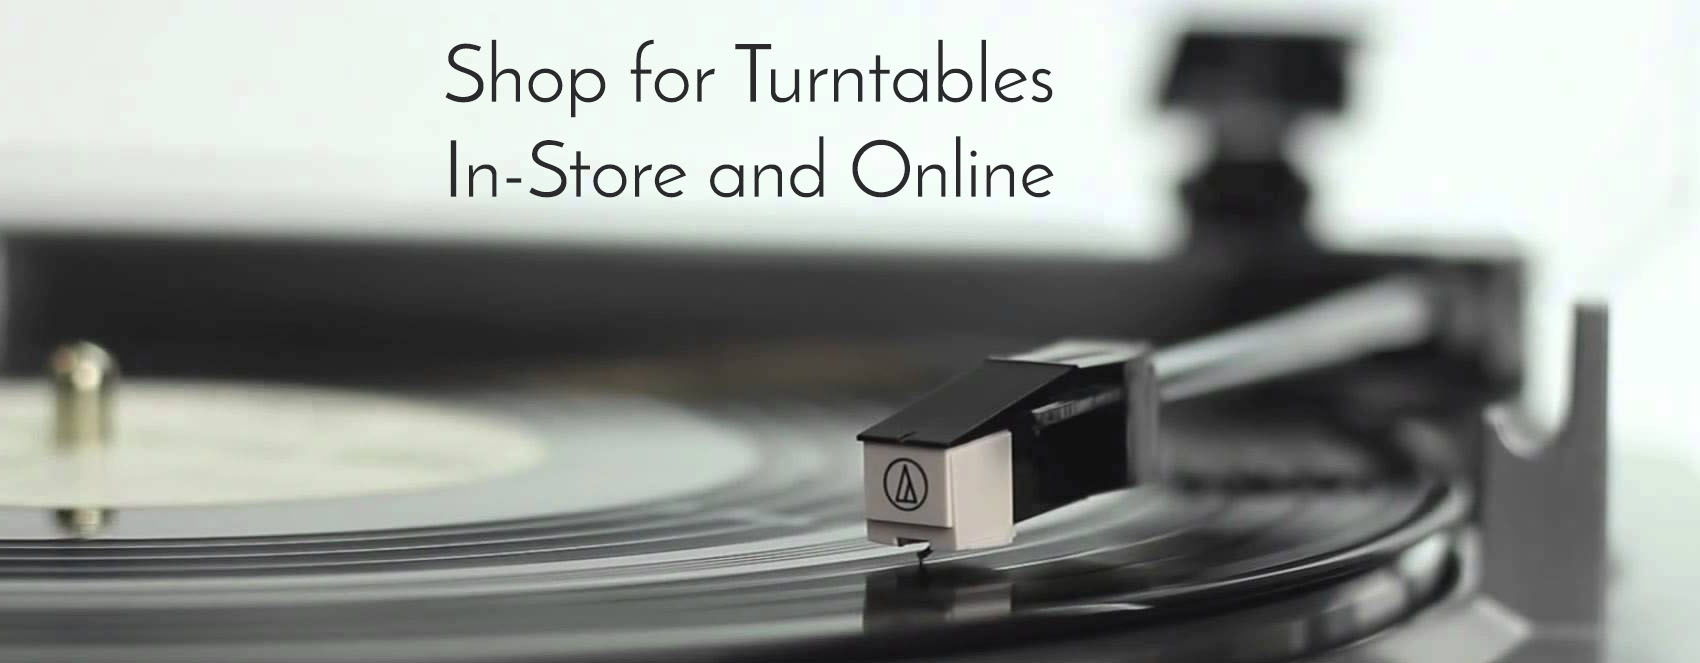 Turntables now available online!